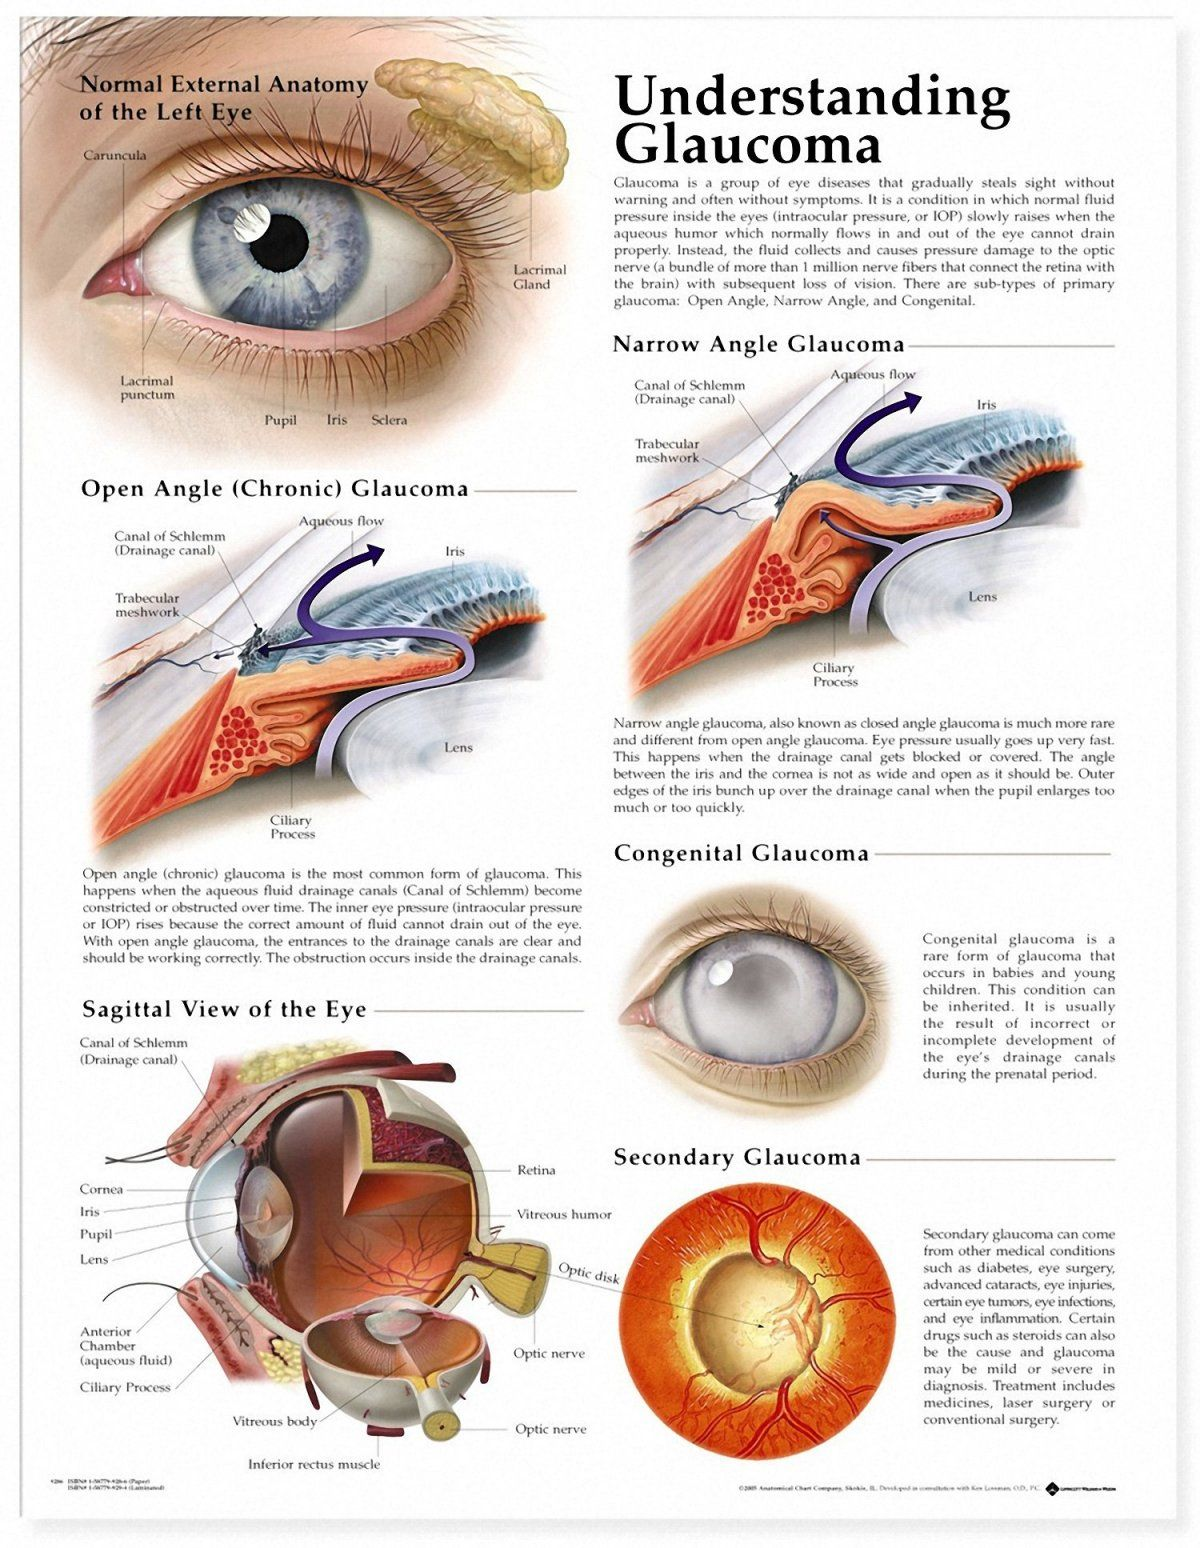 Understanding Glaucoma Chart - as this one is near and dear to me, I ...